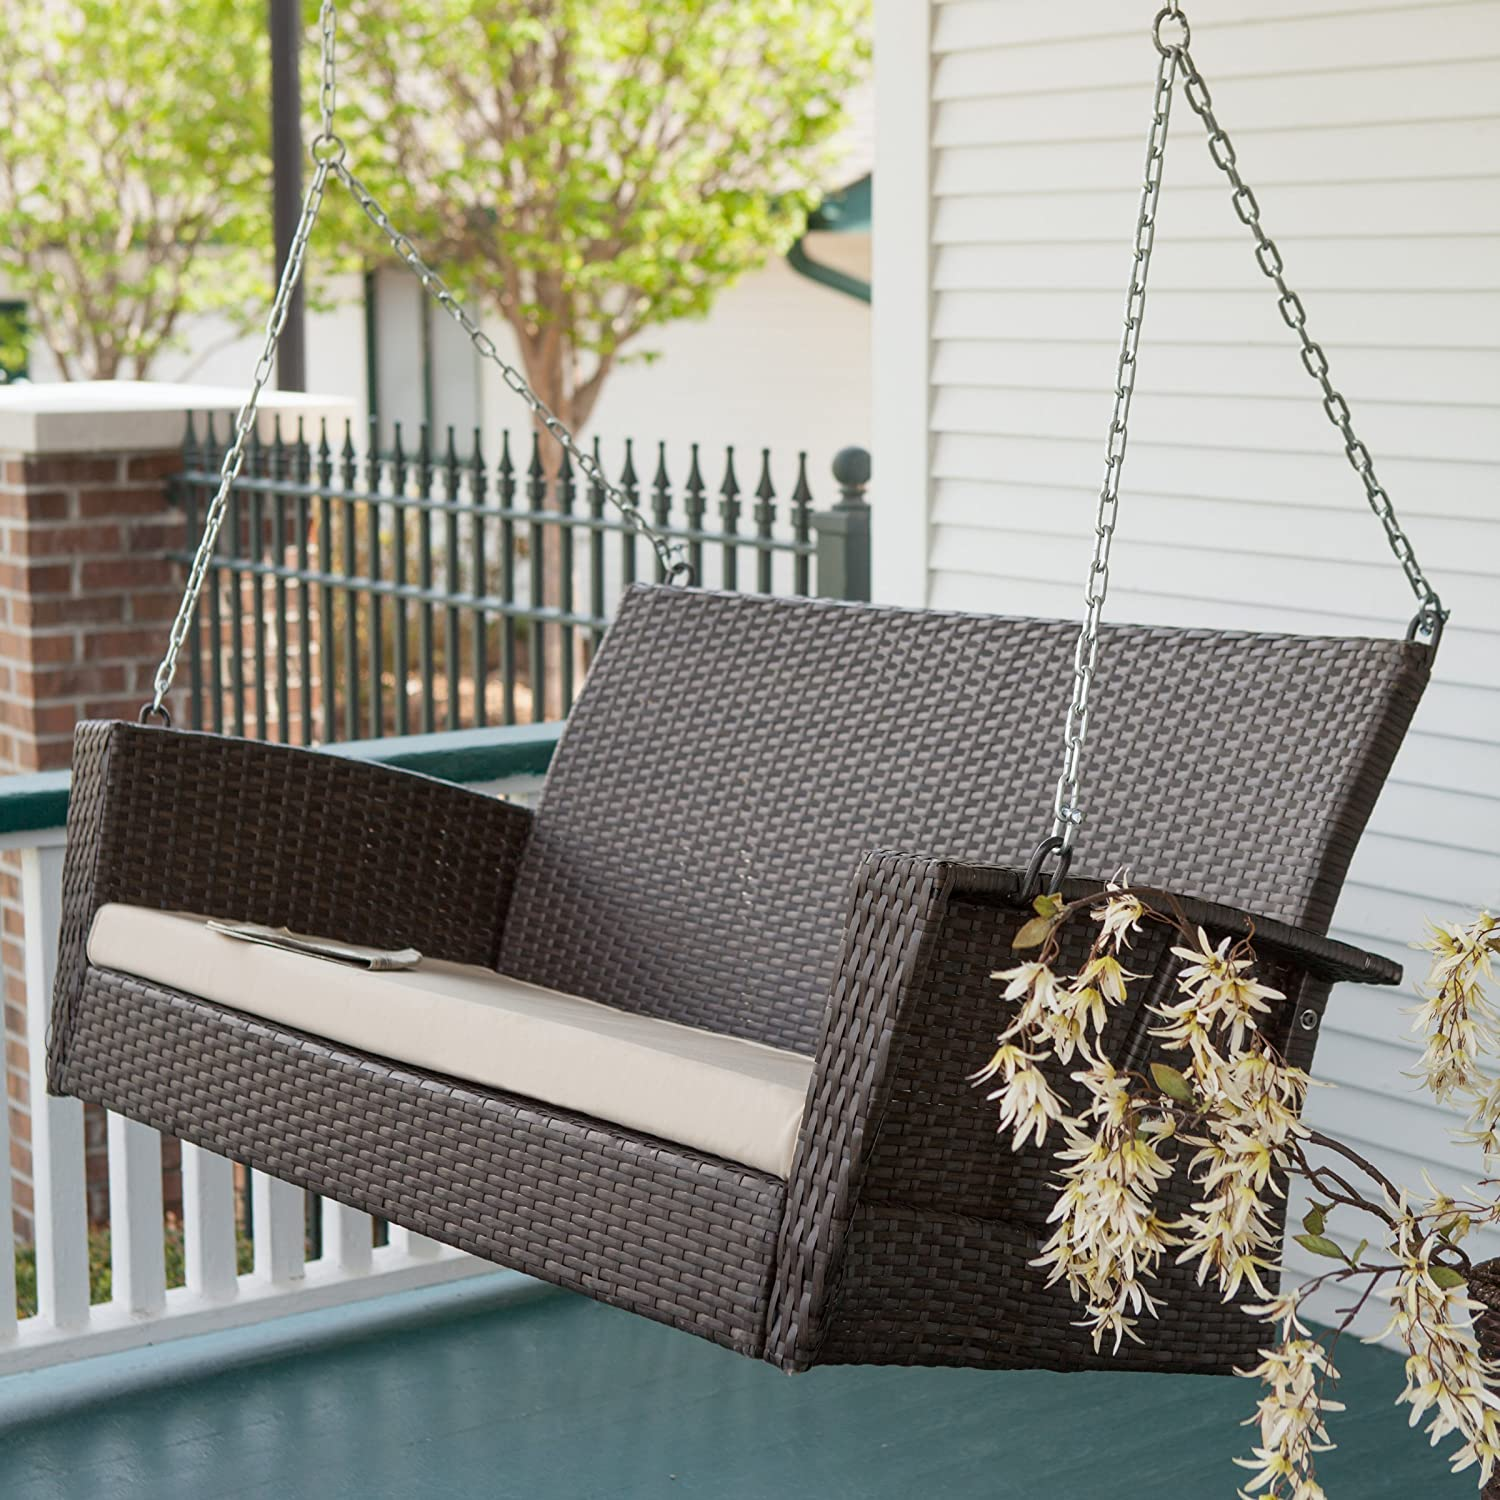 Amazon.com : Coral Coast Soho Wicker Porch Swing With Free : Garden U0026  Outdoor